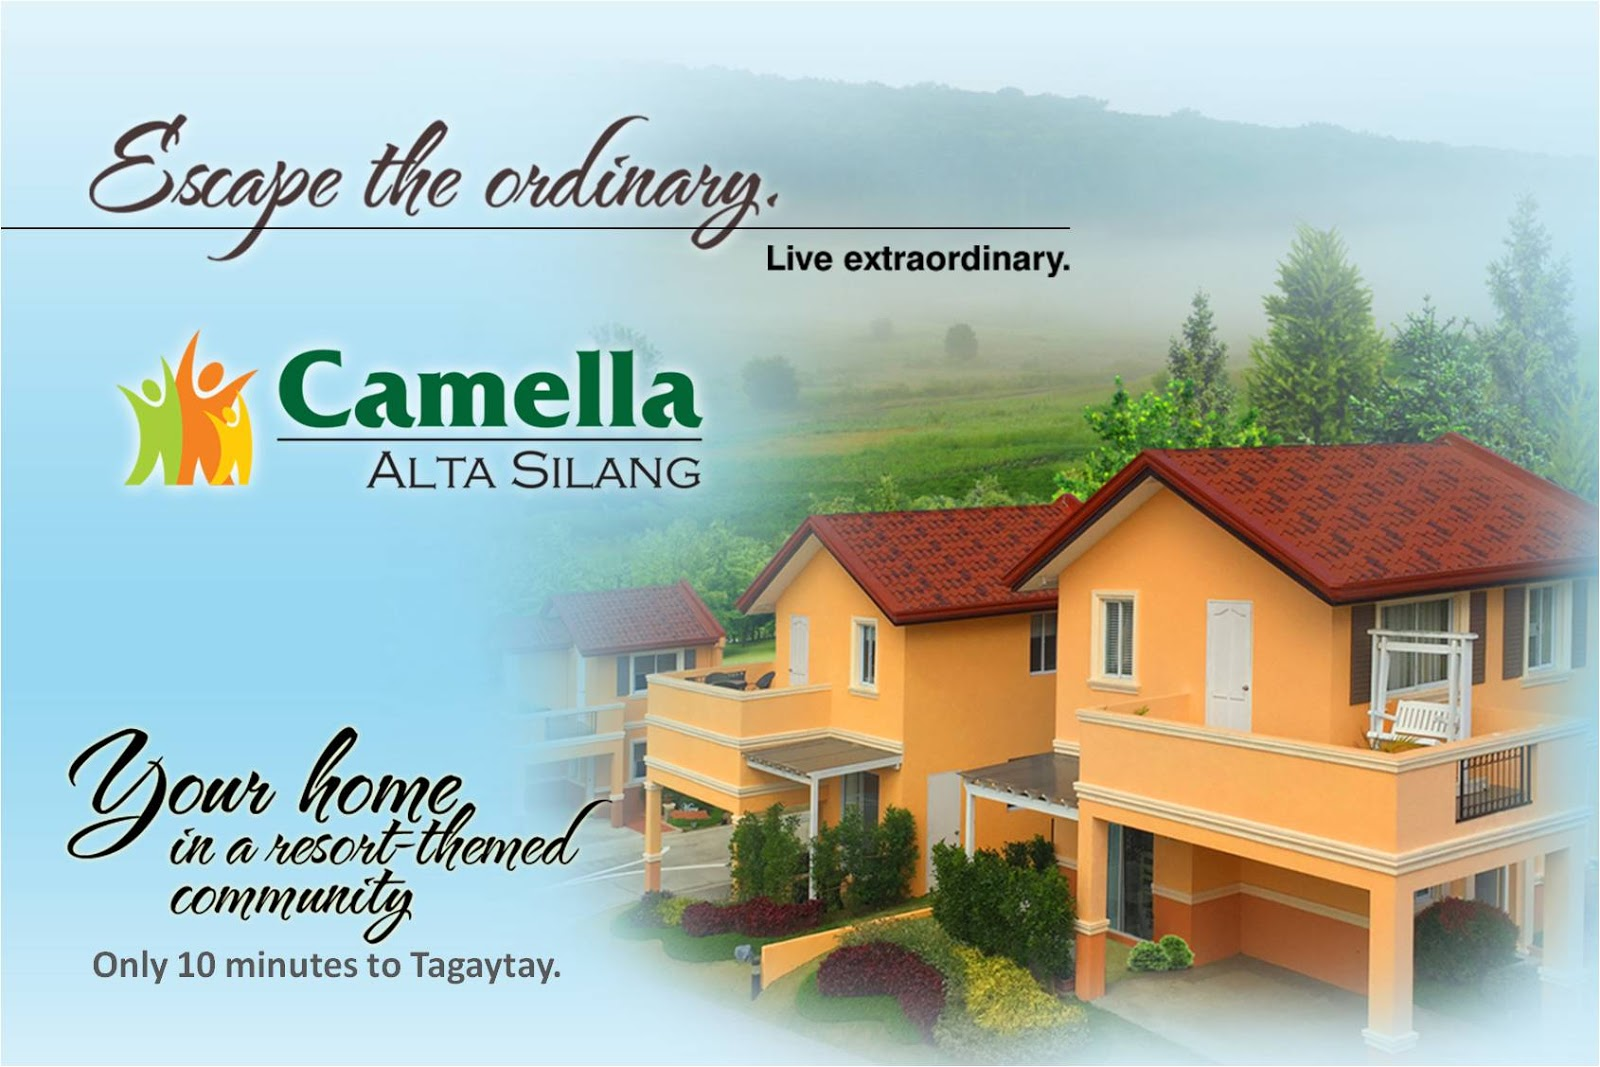 Camella homes house and lot near tagaytay city - Camella Alta Silang House For Sale In Silang Cavite Very Near Tagaytay City